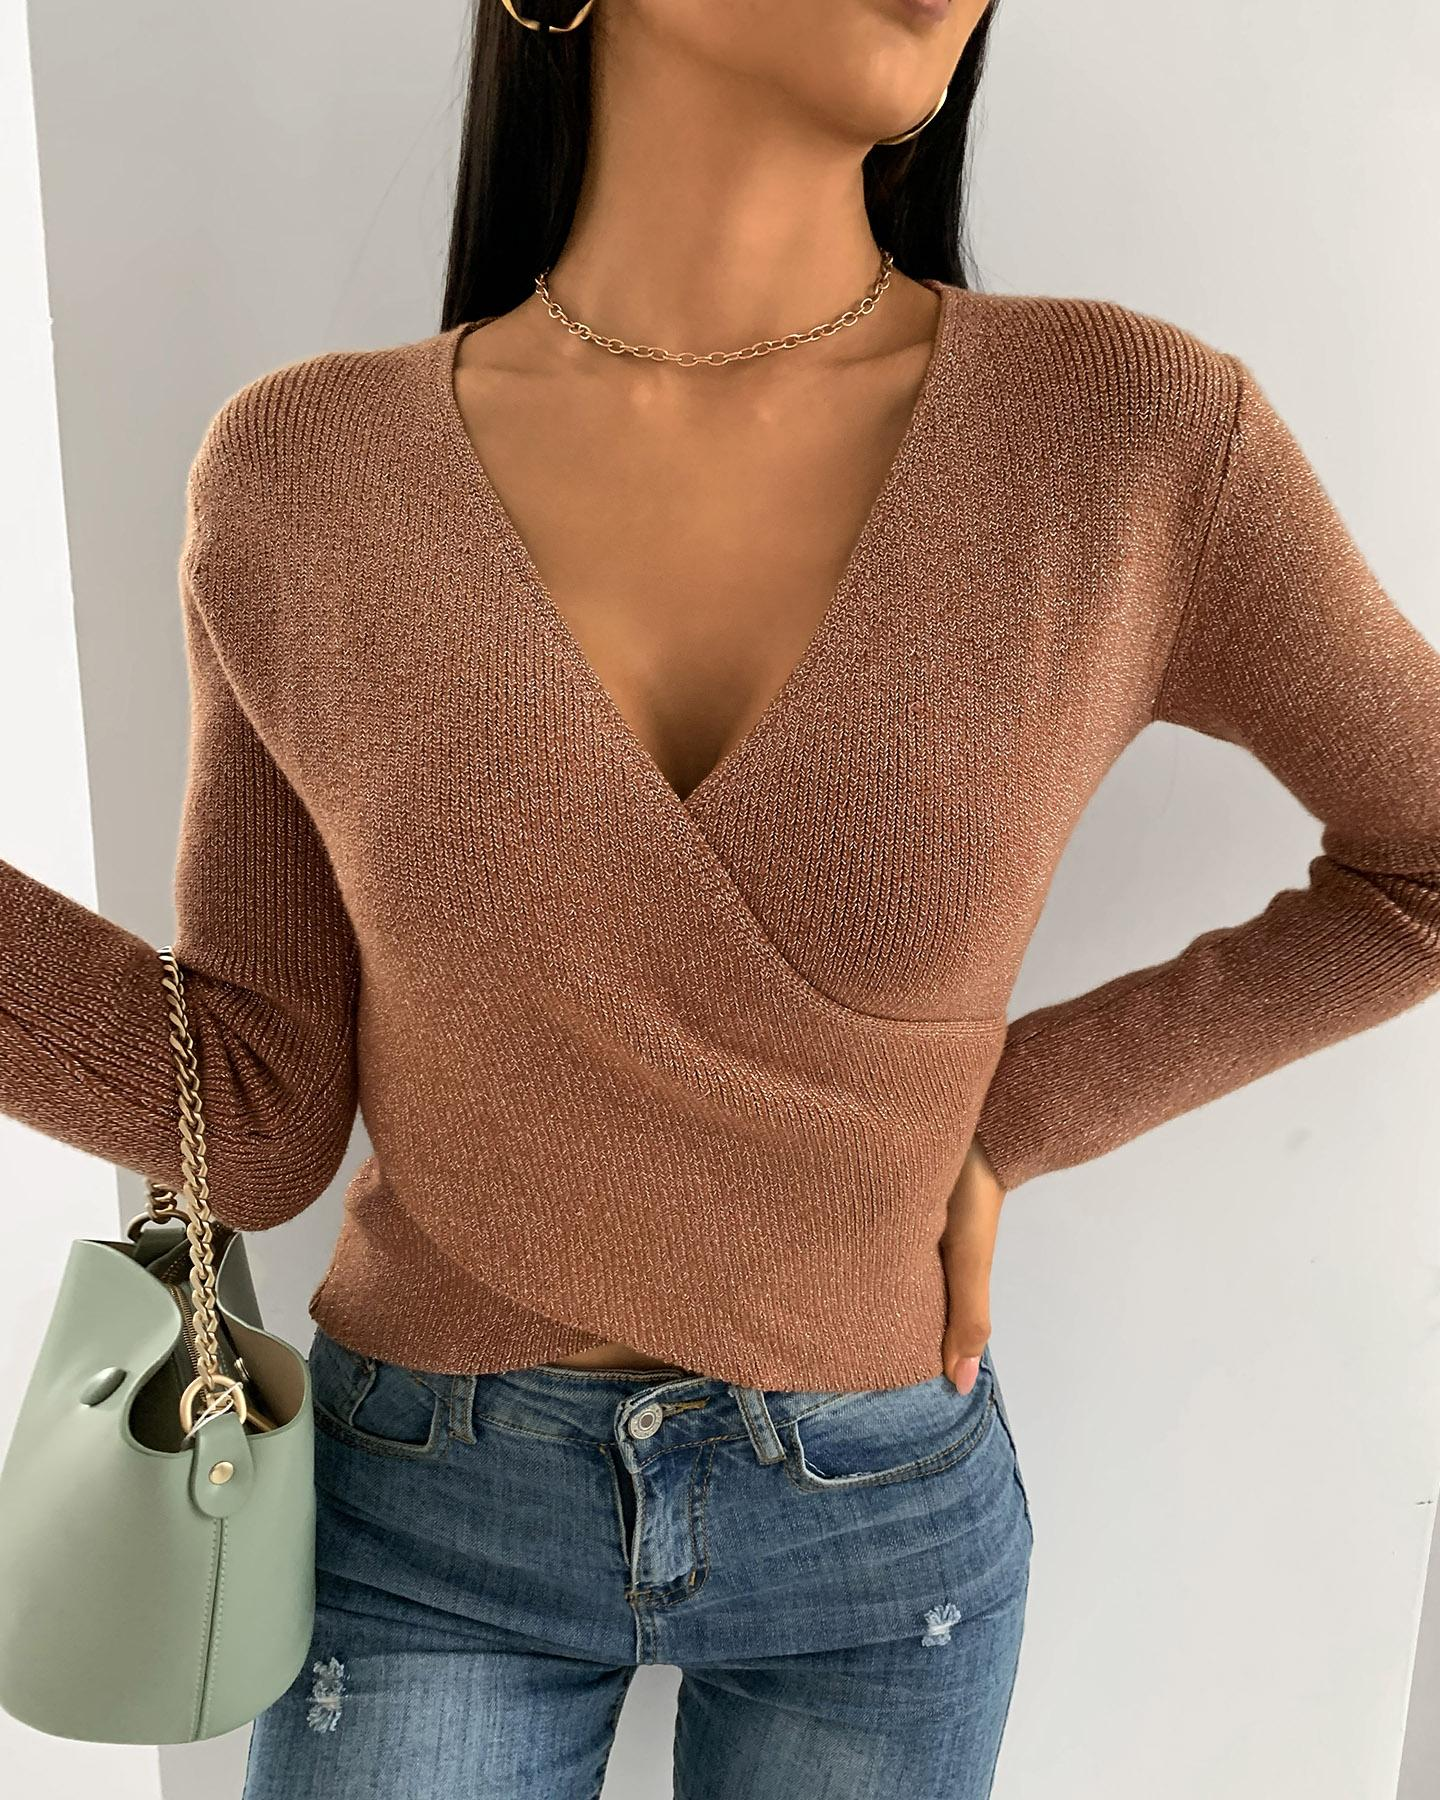 Solid Wrap Long Sleeve Knit Crop Top